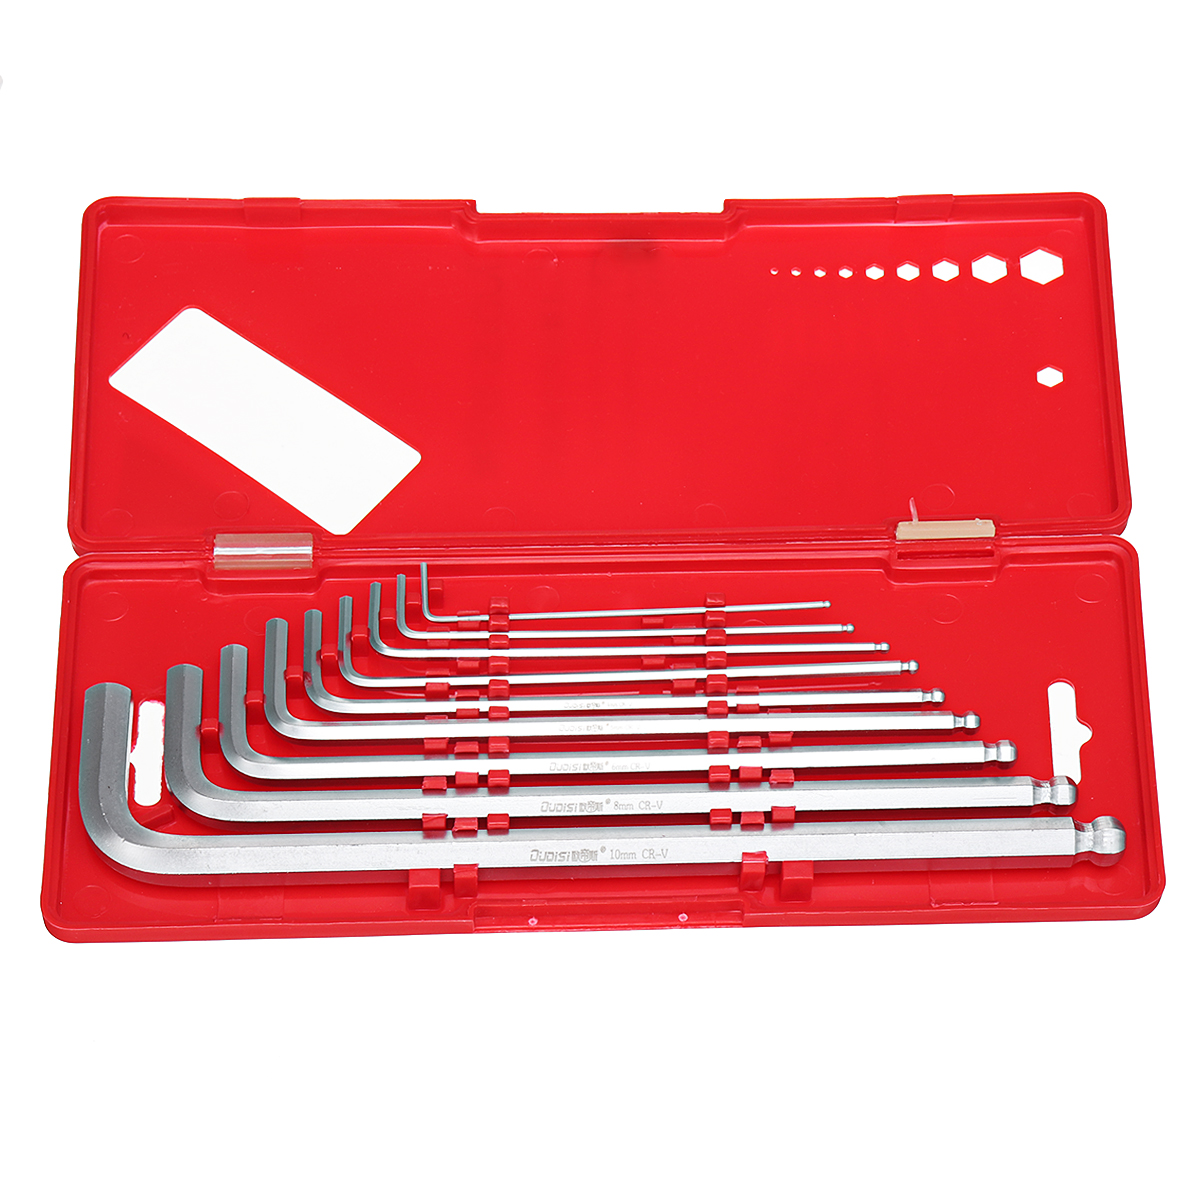 9pcs Ball Point End Hex Allen Allan Wrench Key Hand Tools Kits Accessories 1.5-10mm with Box